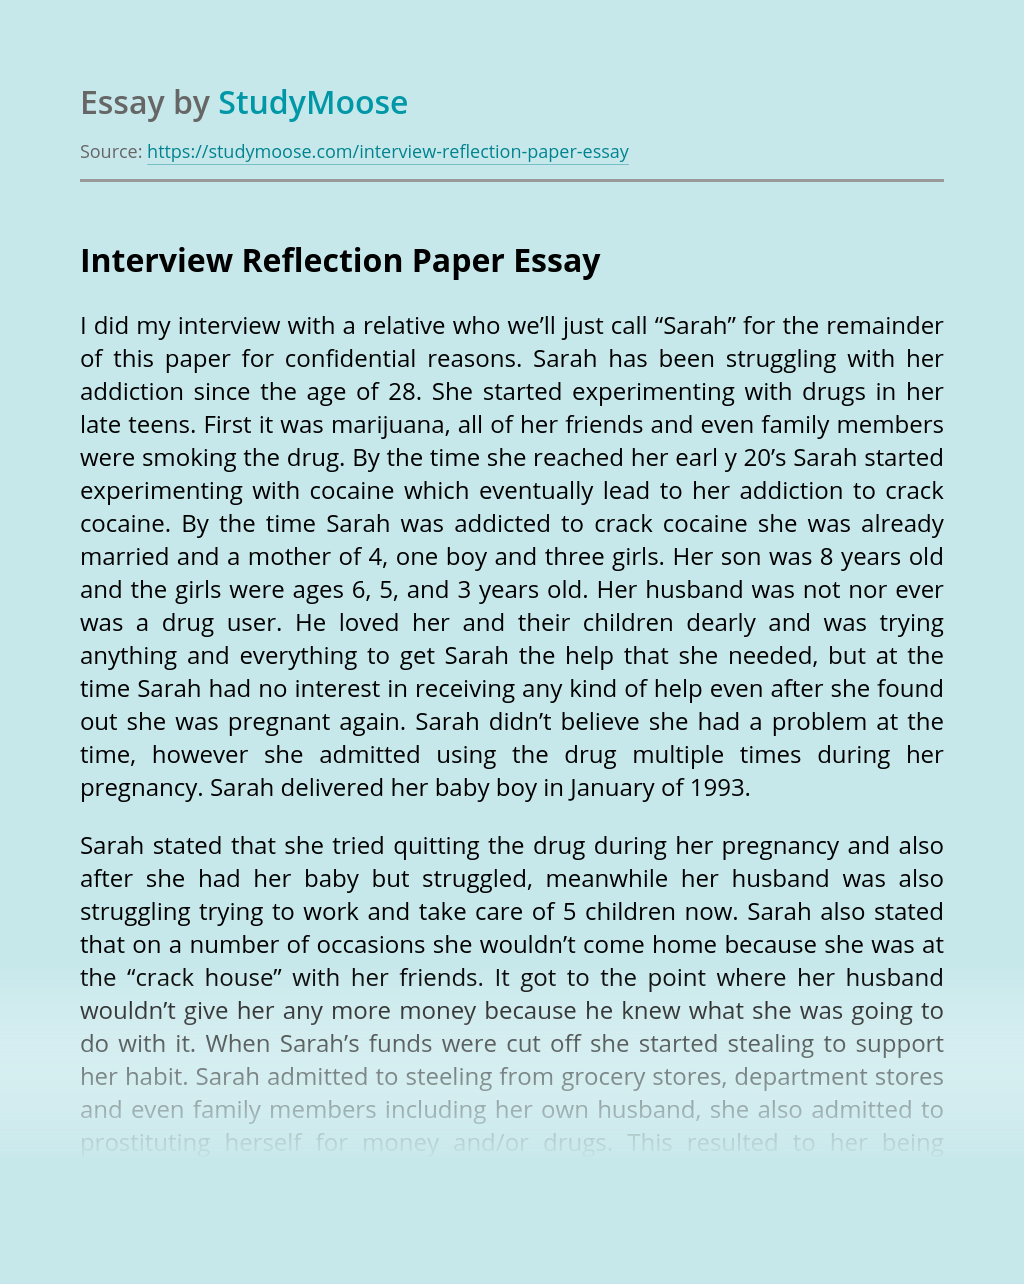 Interview Reflection Paper